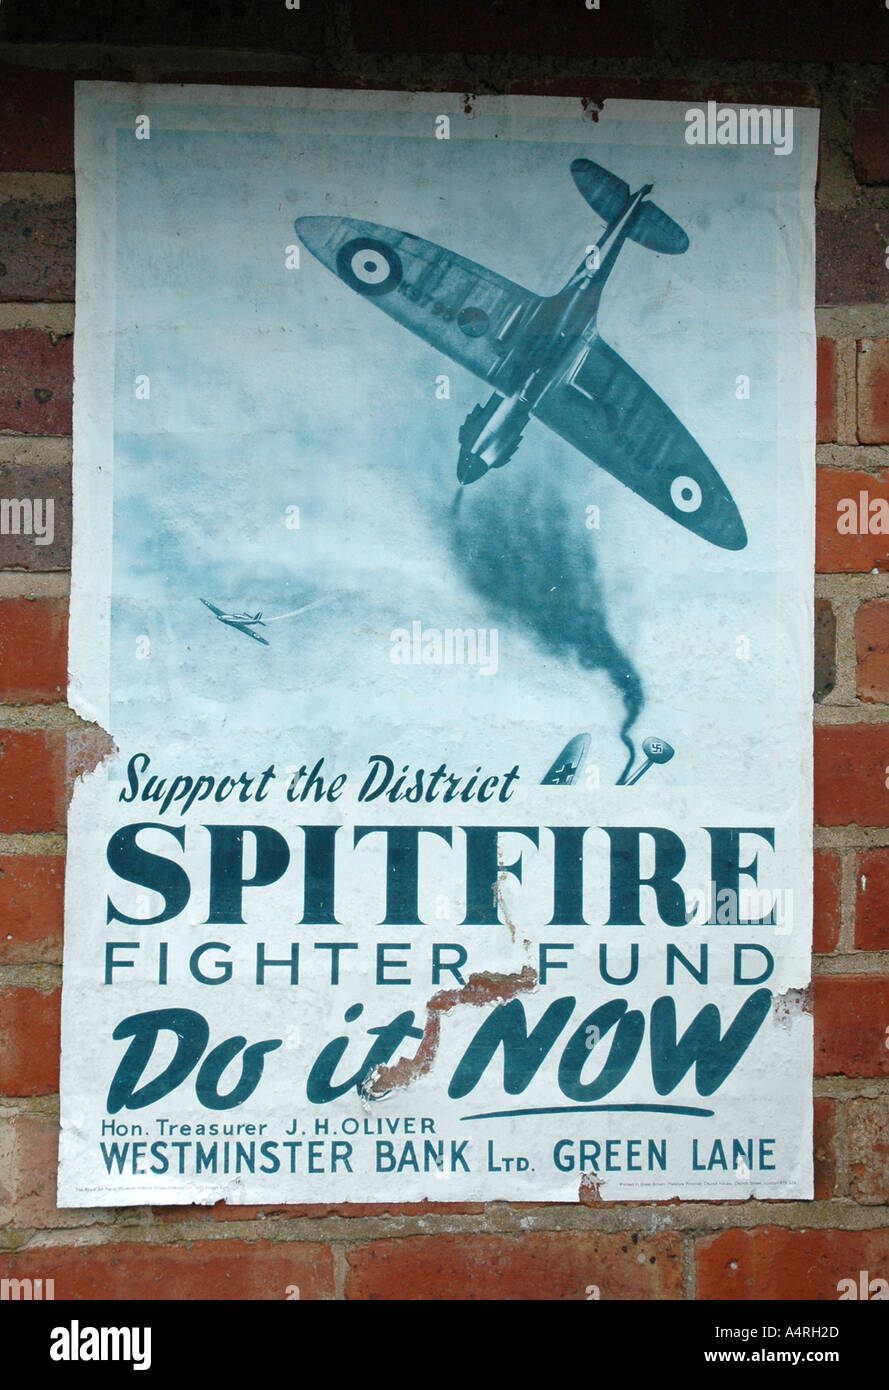 Spitfire Fighter Fund poster that was on display in WWII - Stock Image